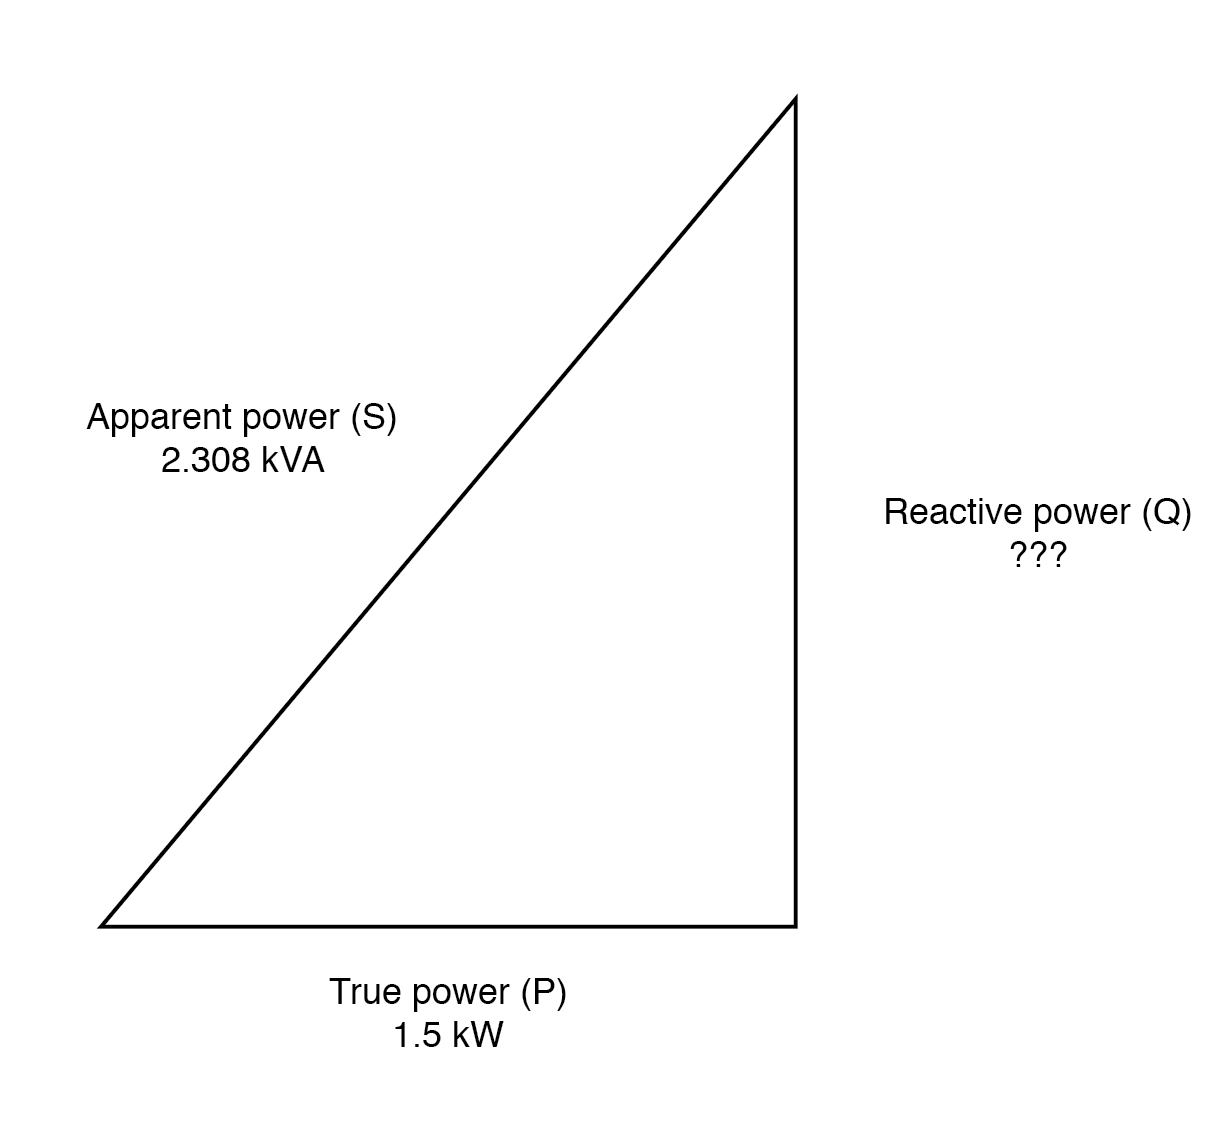 Reactive power may be calculated from true power and apparent power.